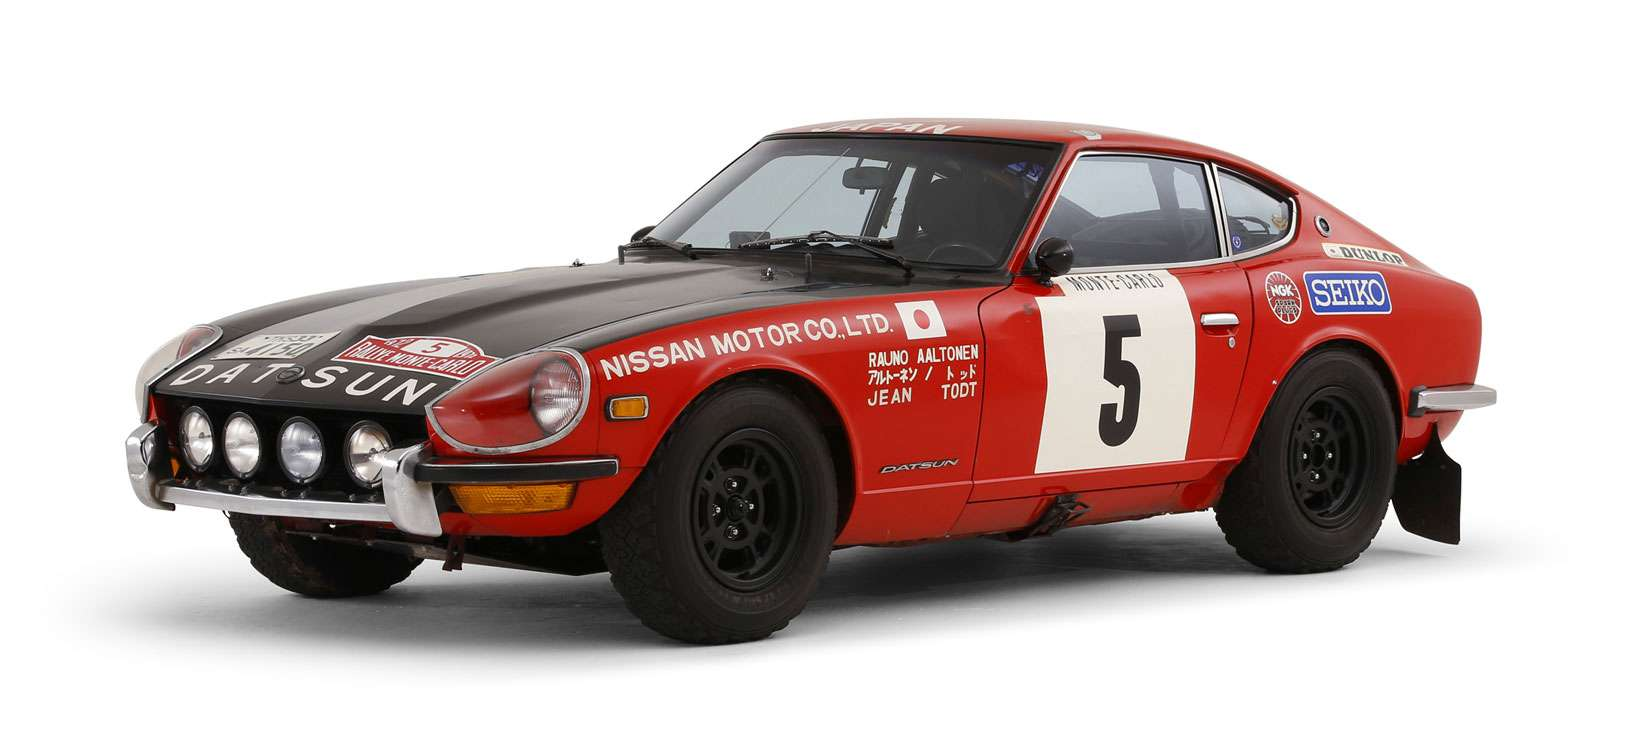 Datsun 240Z 1972 - The 41st RallyeMonte-Carlo in 1972 Rally Car Competition